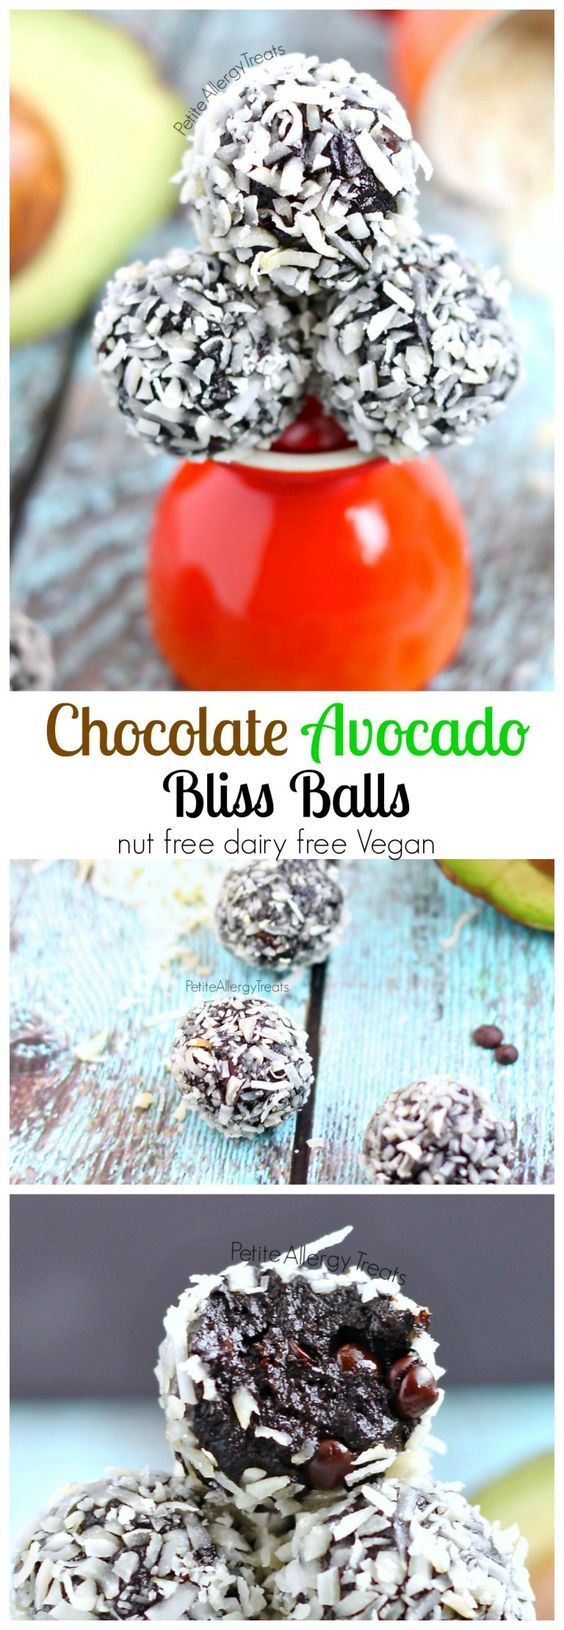 Chocolate Truffle Bliss Balls (vegan) - Healthy raw chocolate energy balls made avocado and seed butter!